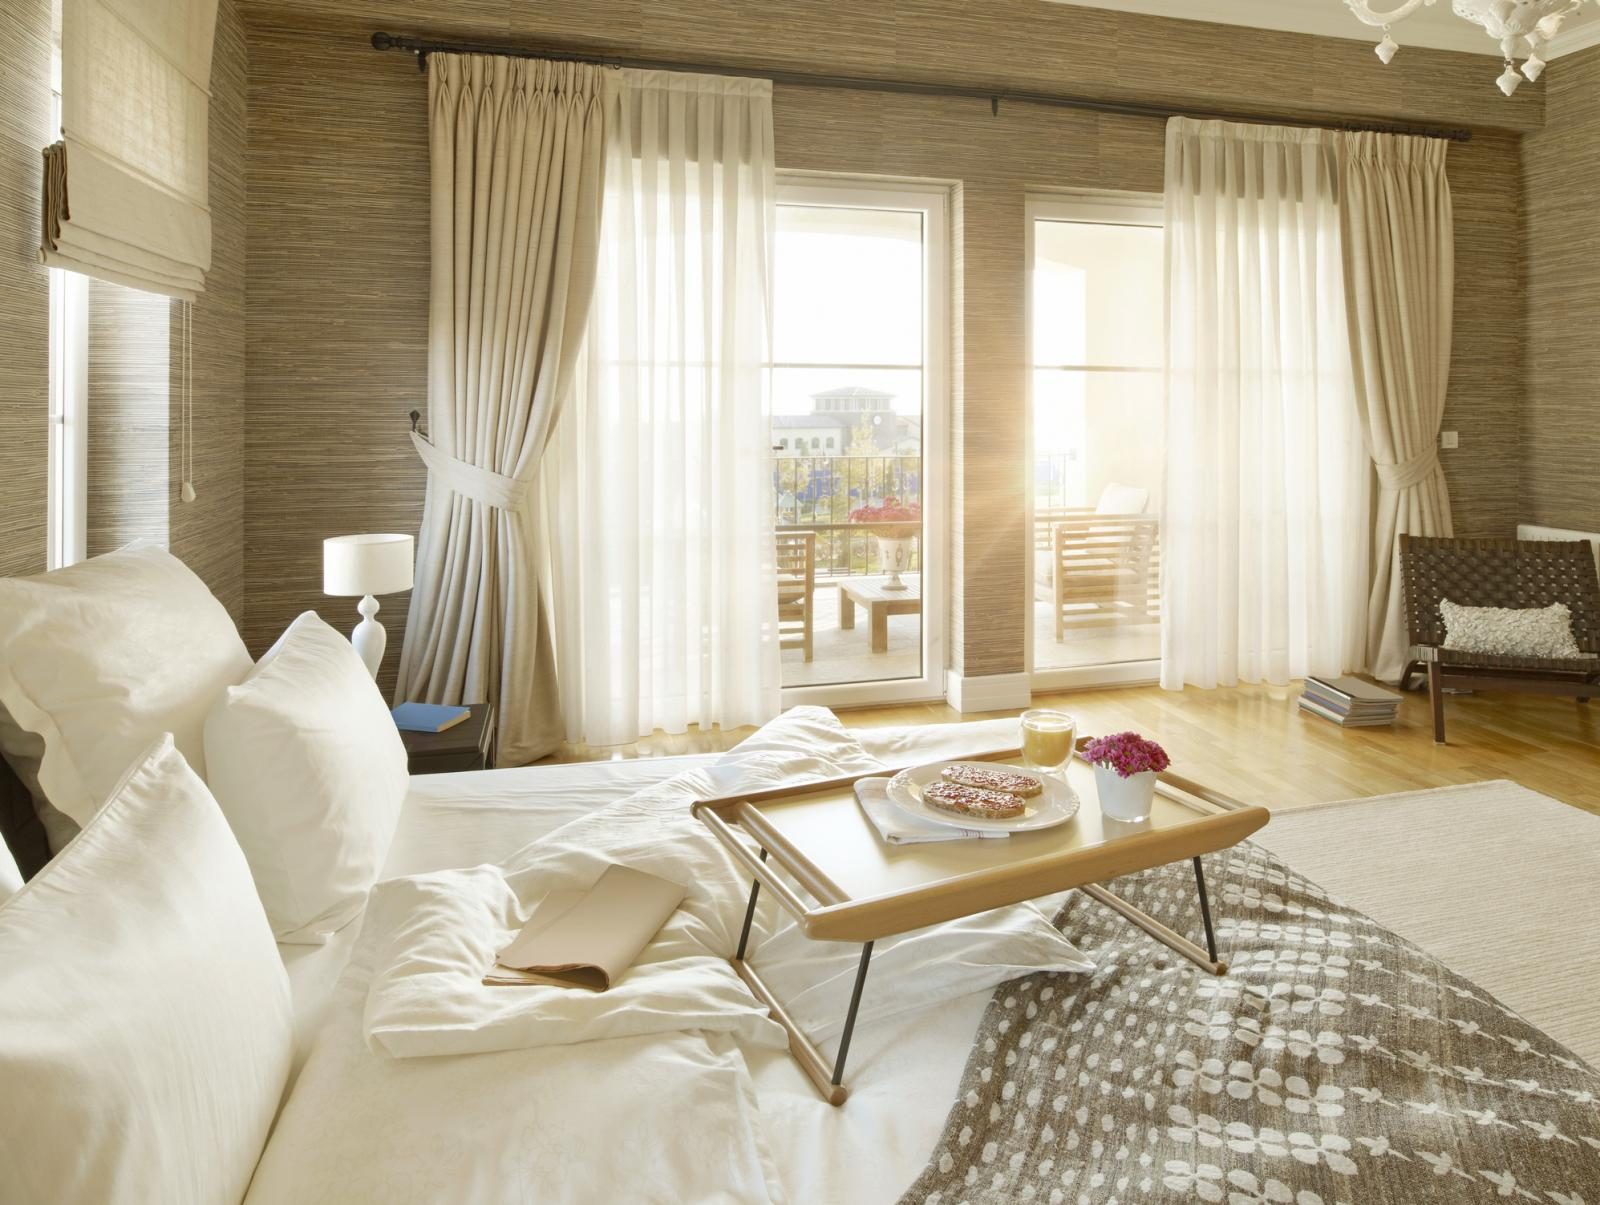 Comfortable bedroom with big windows